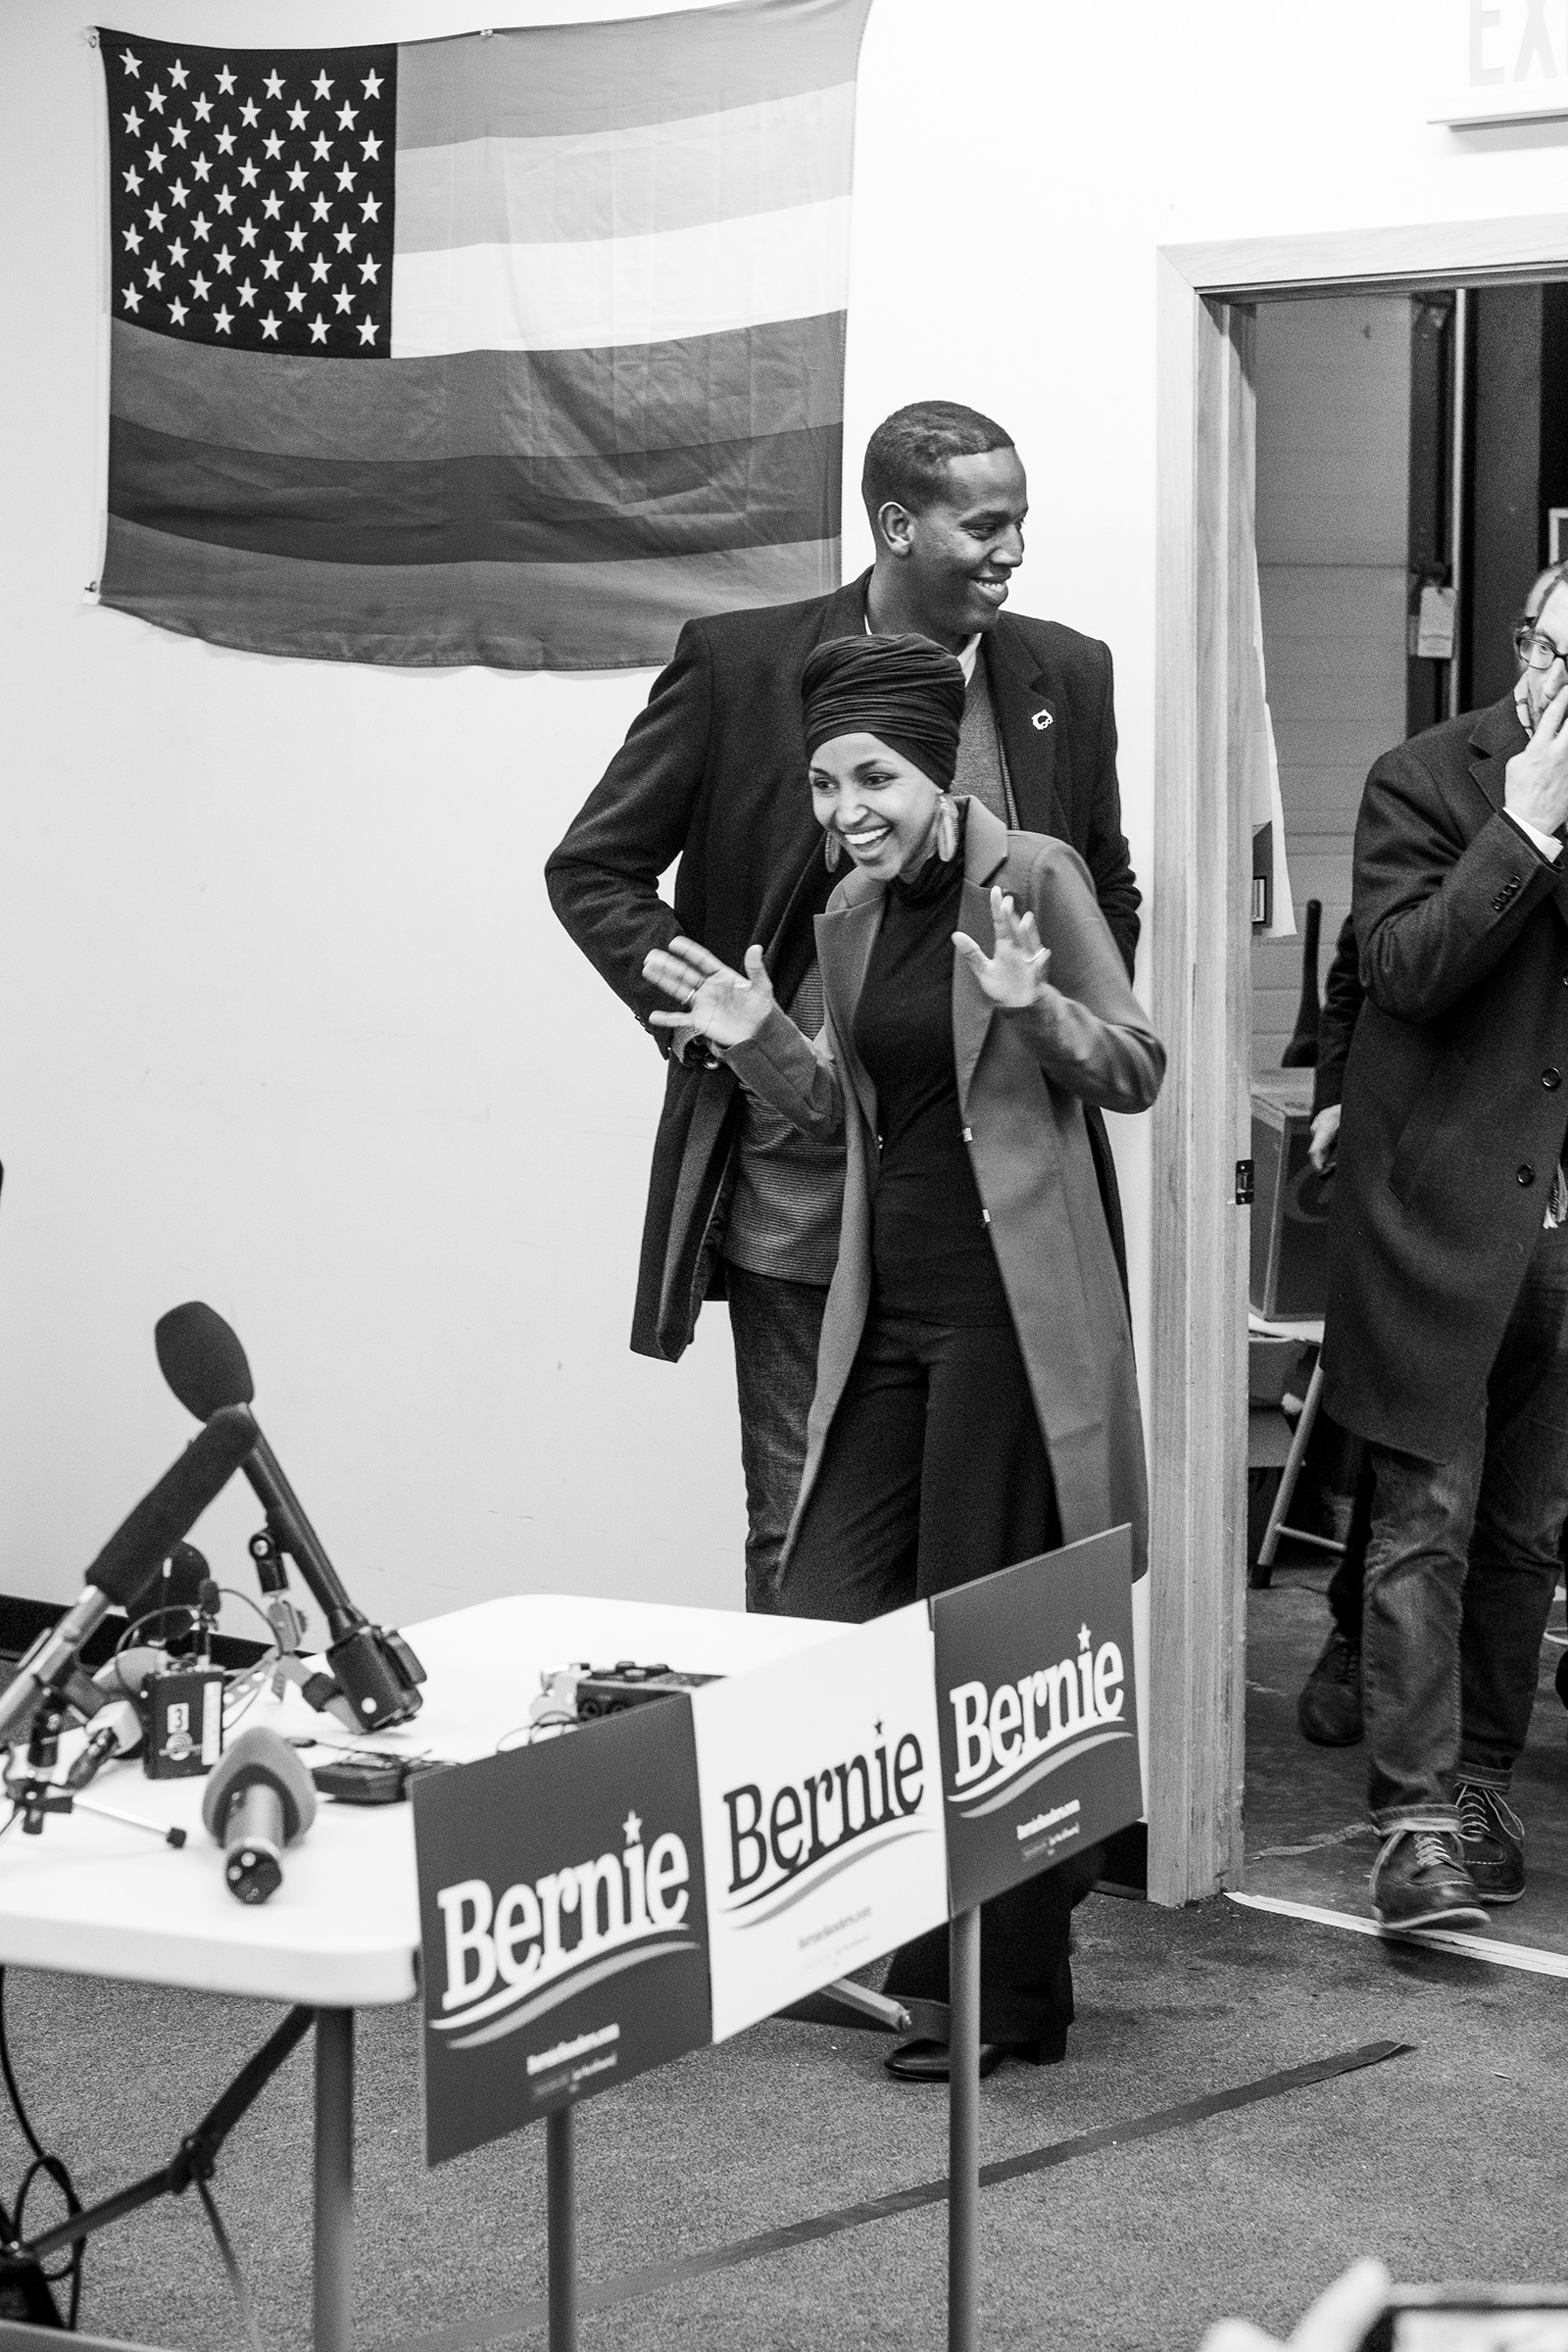 aunch at the Bernie 2020 Des Moines Field Office, Jan. 30, 2020.